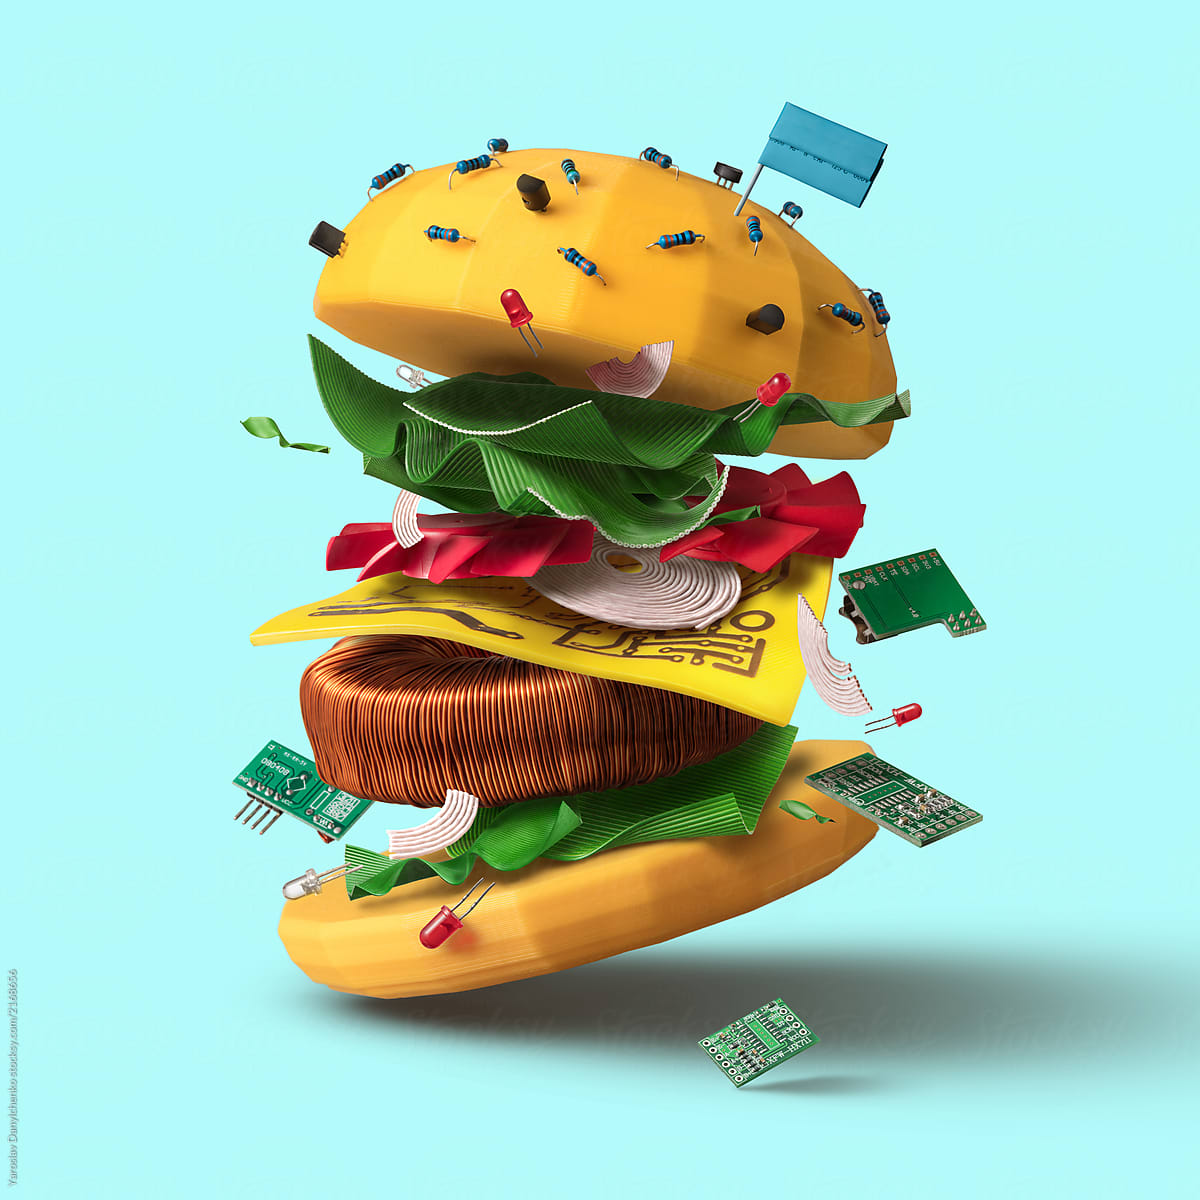 Big Burger As The Symbol Made From Technological Elements With